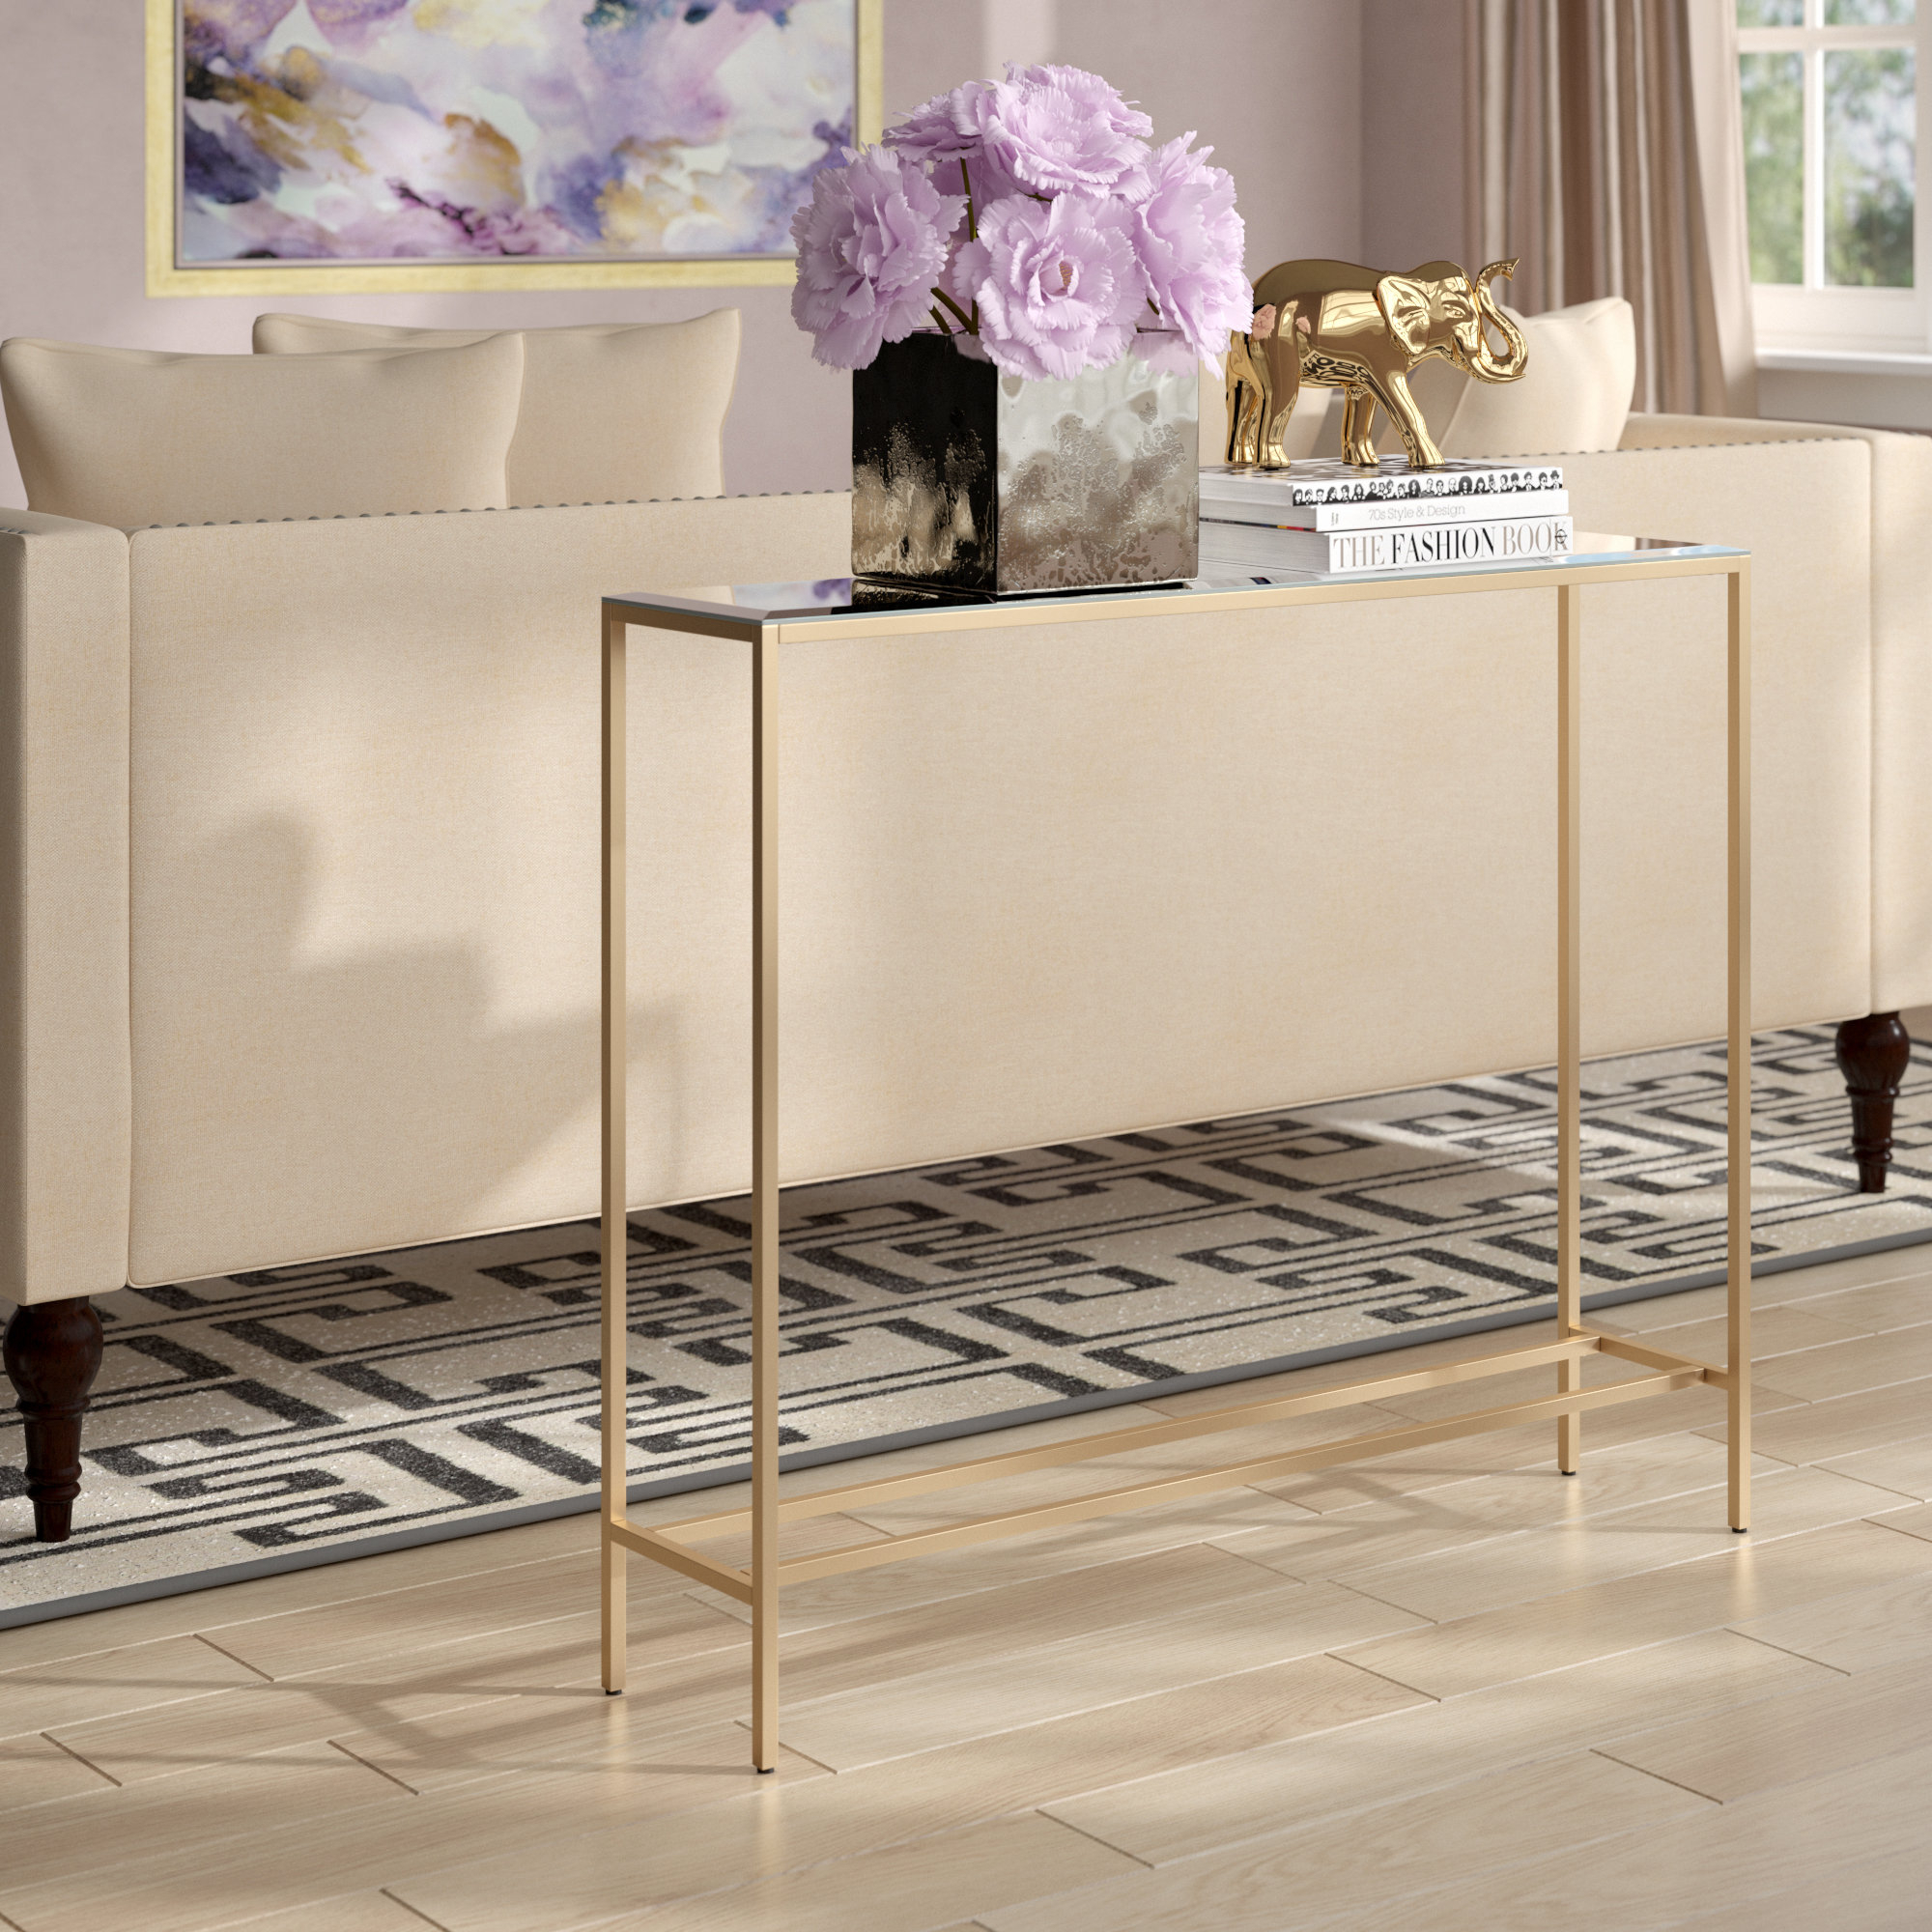 Gold Console Tables You'll Love | Wayfair in Mix Patina Metal Frame Console Tables (Image 7 of 30)